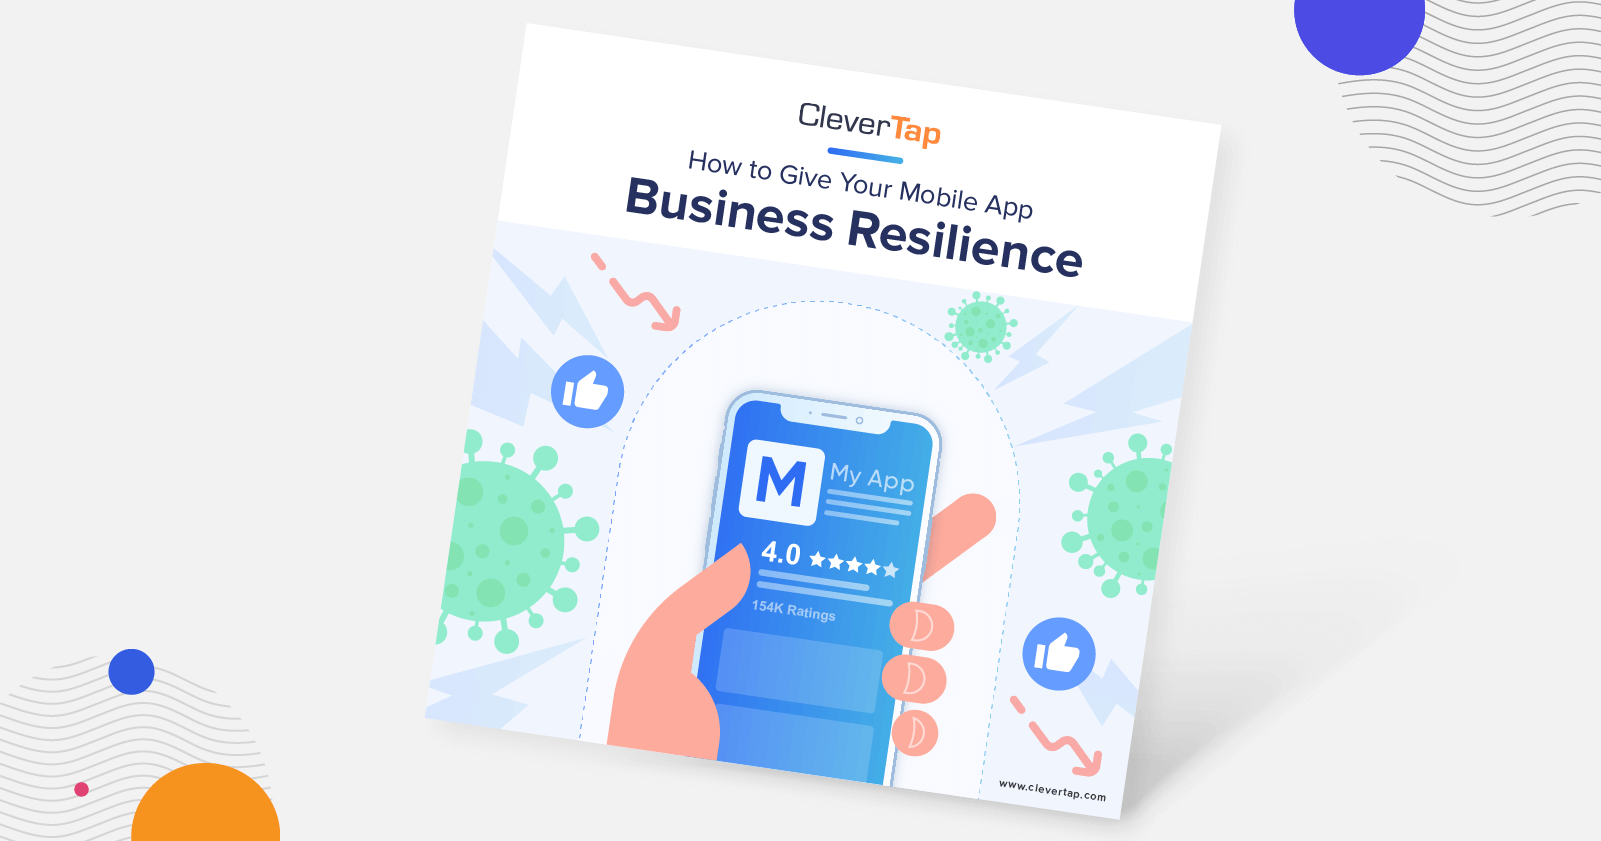 How to Give Your Mobile App Business Resilience